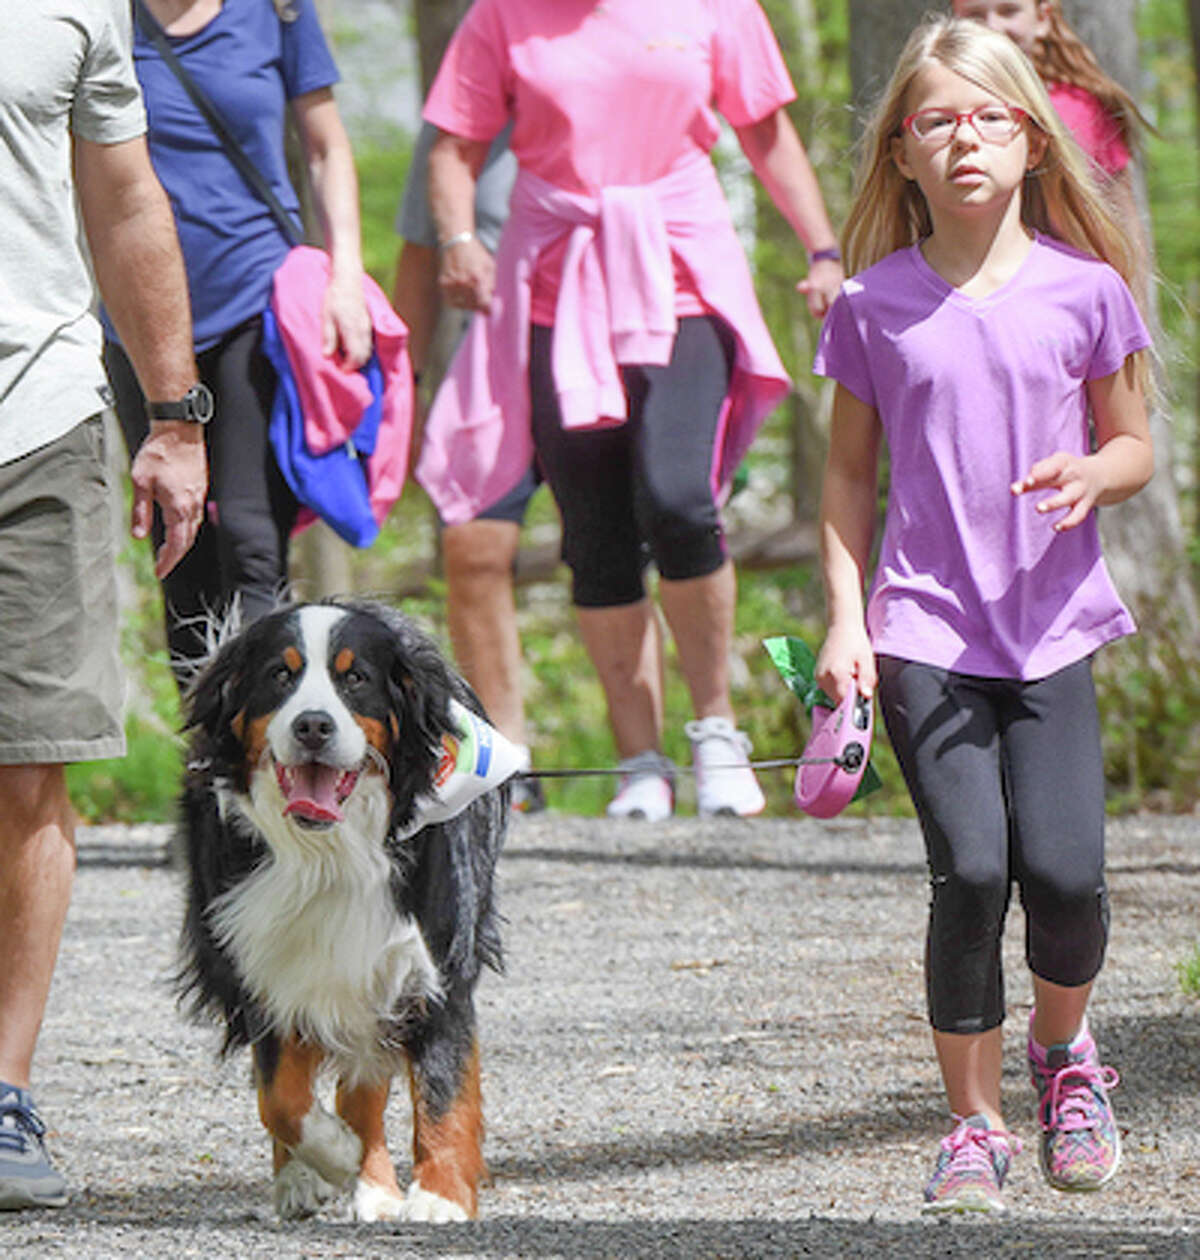 Maddie Soccio, 7, and Cali joined in the Mutt Strut last year. - Bryan Haeffele/Hearst Connecticut Media